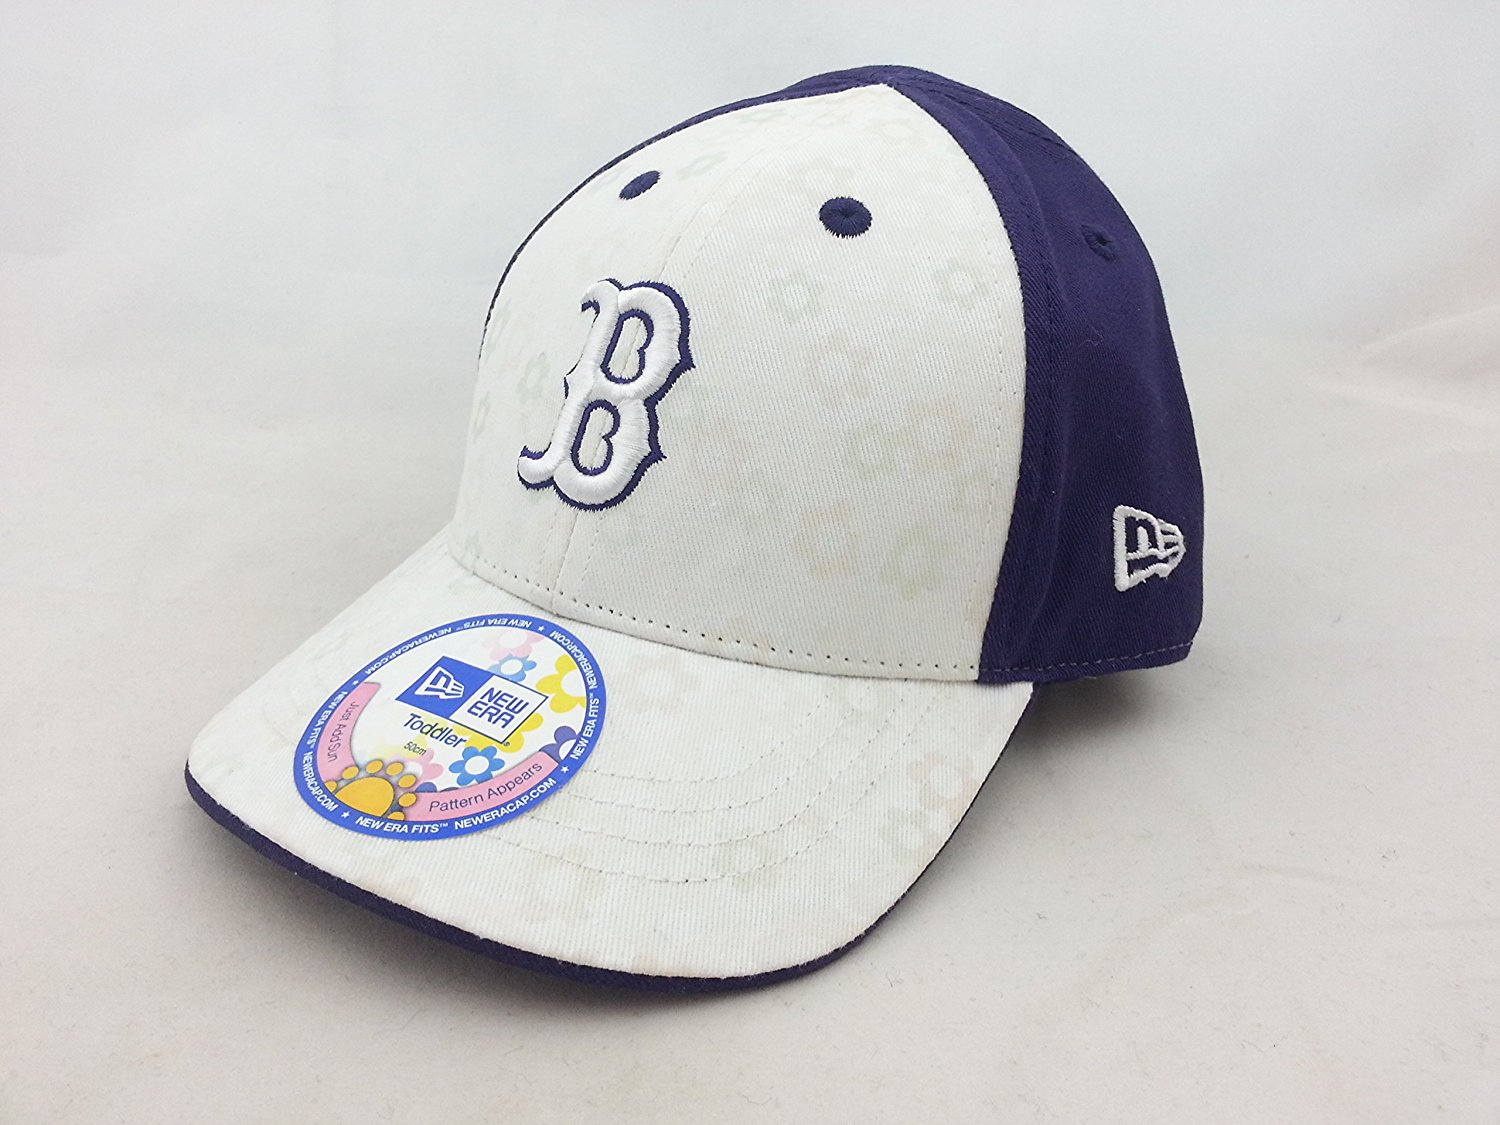 buy online c3fcf 0cbb5 Get Quotations · New Era Cap Co - Boston Red Sox Hat - Toddler Sized - Just  add Sun